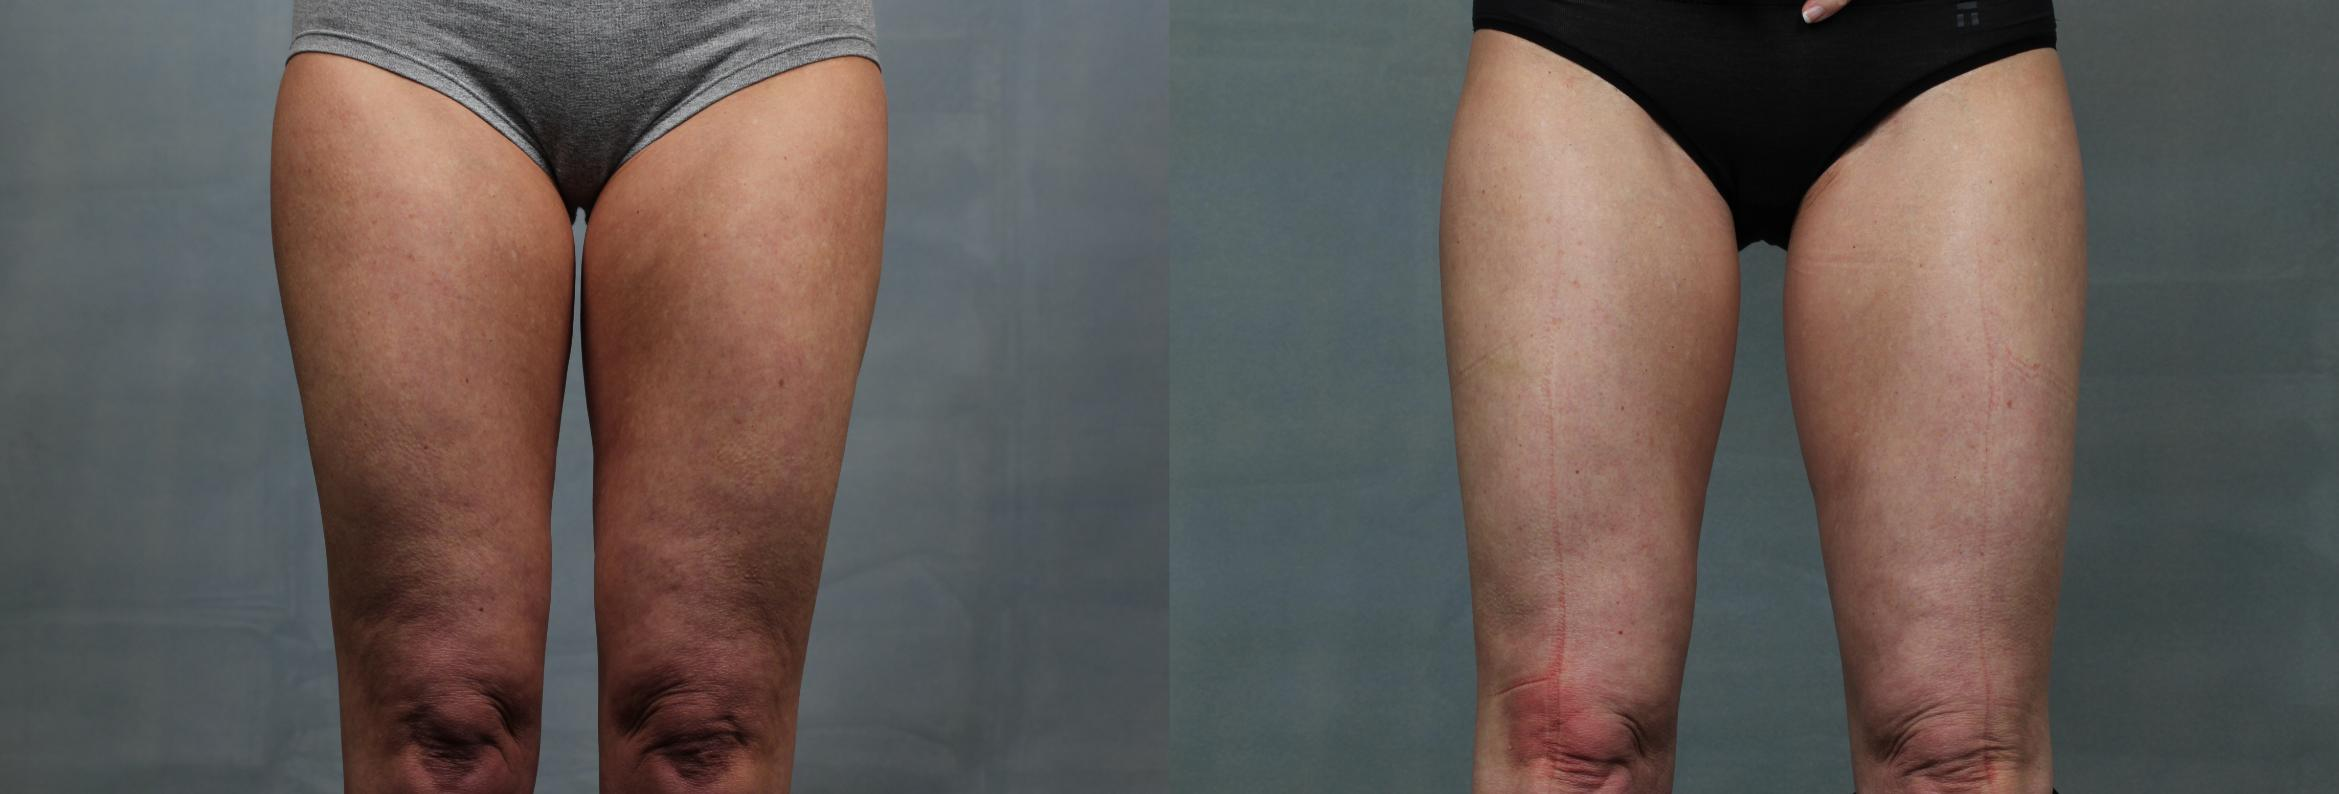 Cellulite Treatments Case 616 Before & After Front | Louisville & Lexington, KY | CaloAesthetics® Plastic Surgery Center